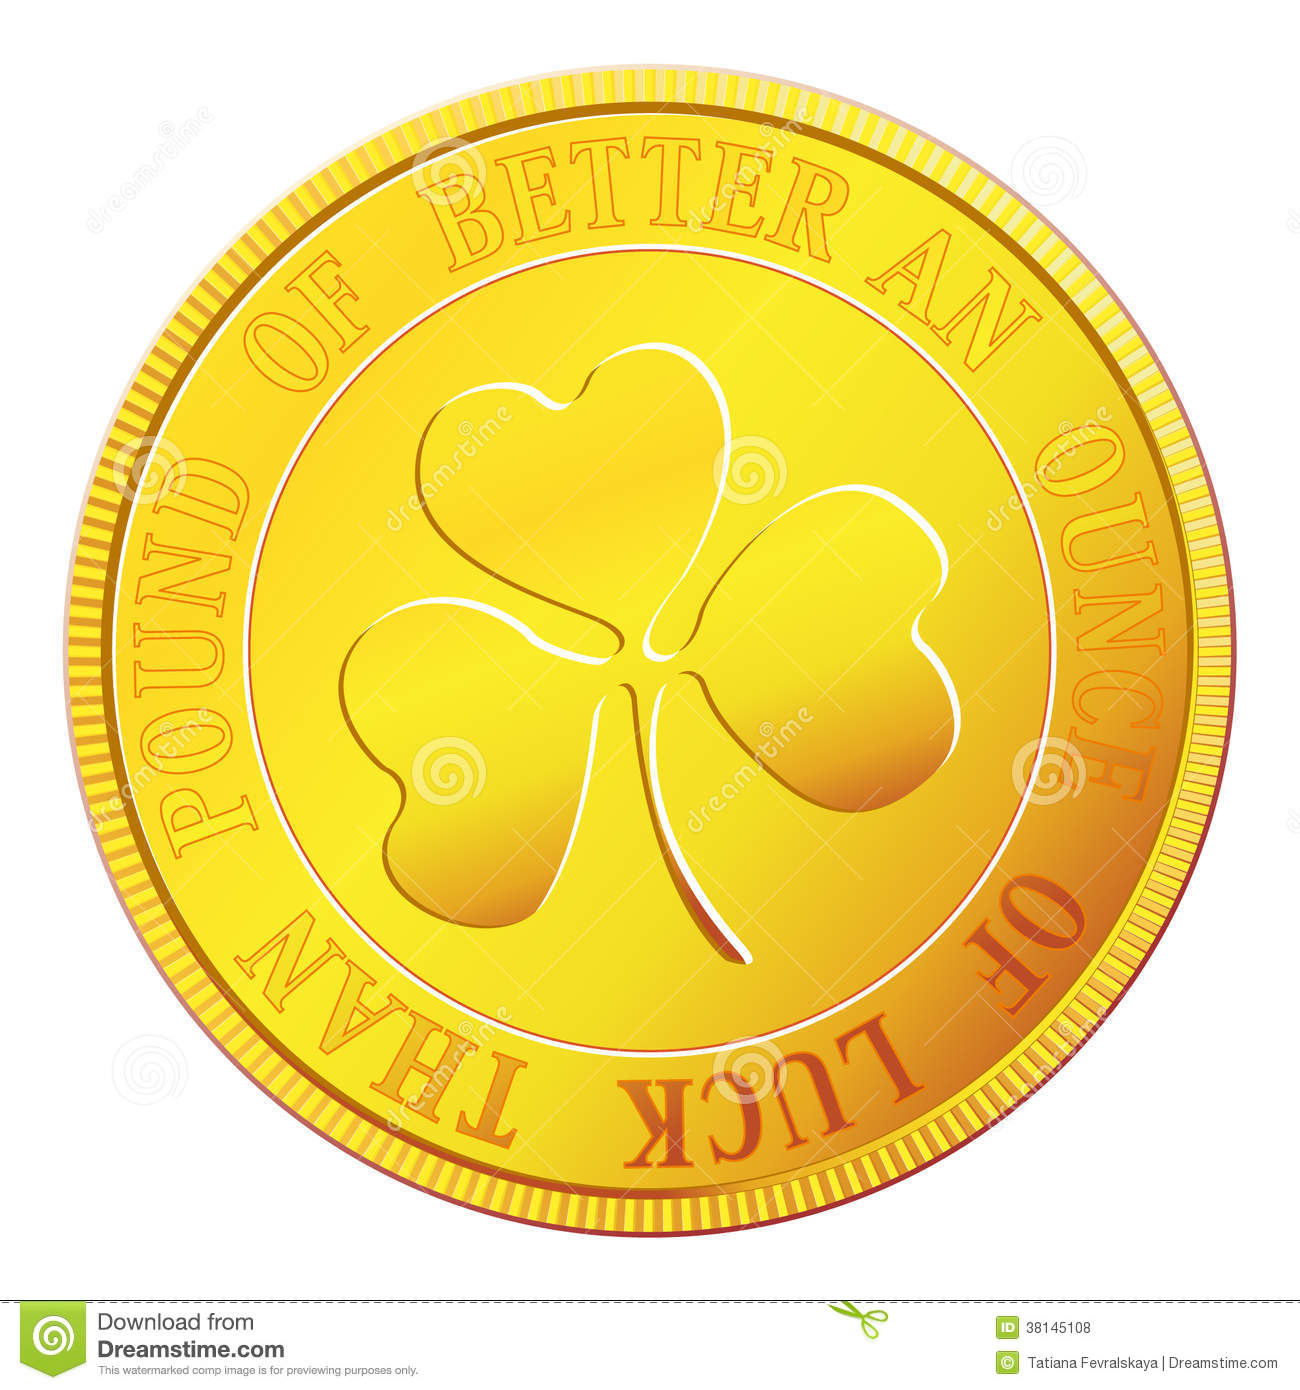 It is a picture of Terrible Printable Gold Coins